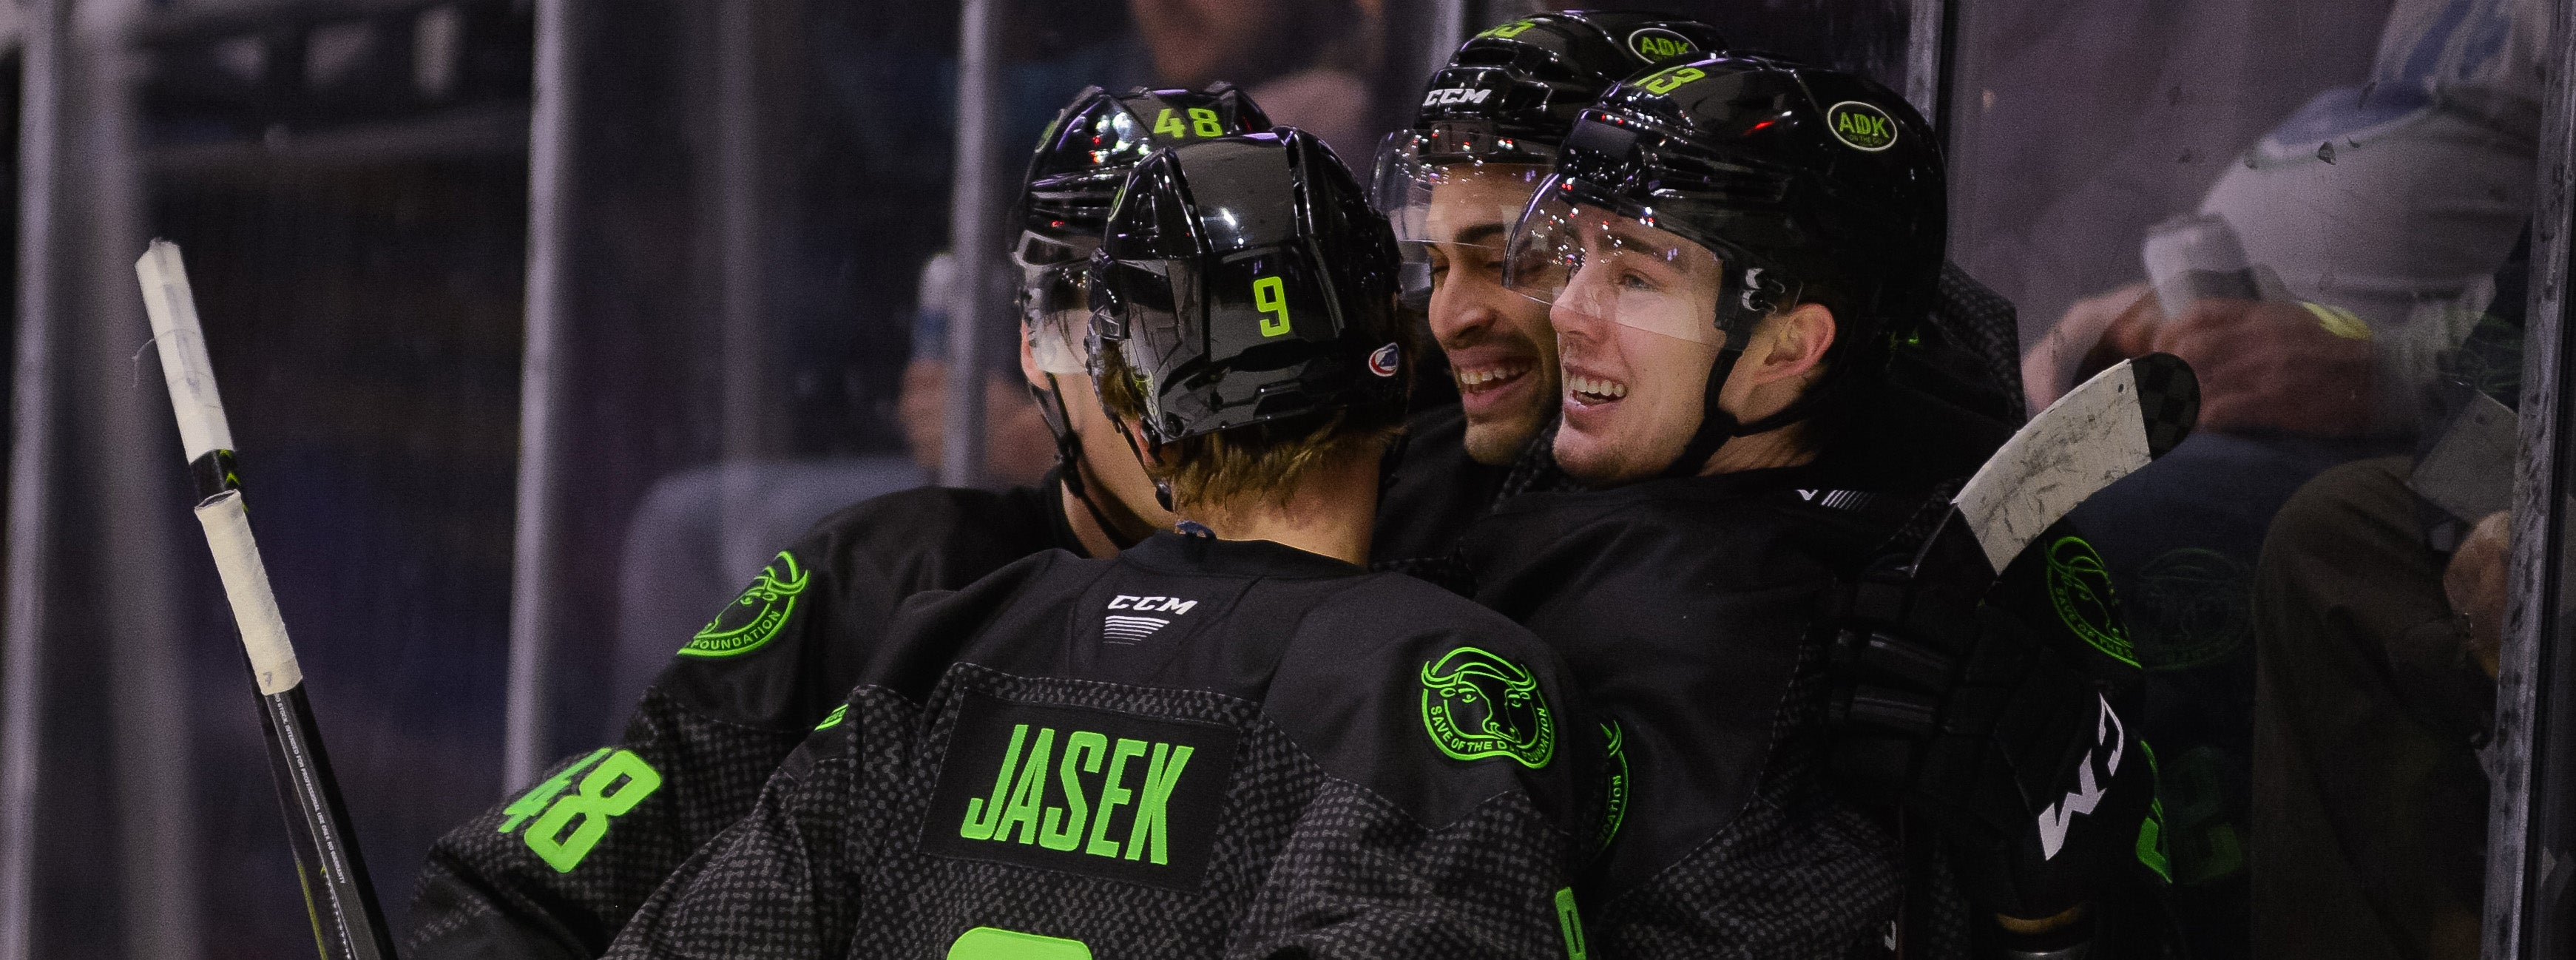 BAILEY'S SECOND STRAIGHT HAT TRICK POWERS COMETS TO WIN